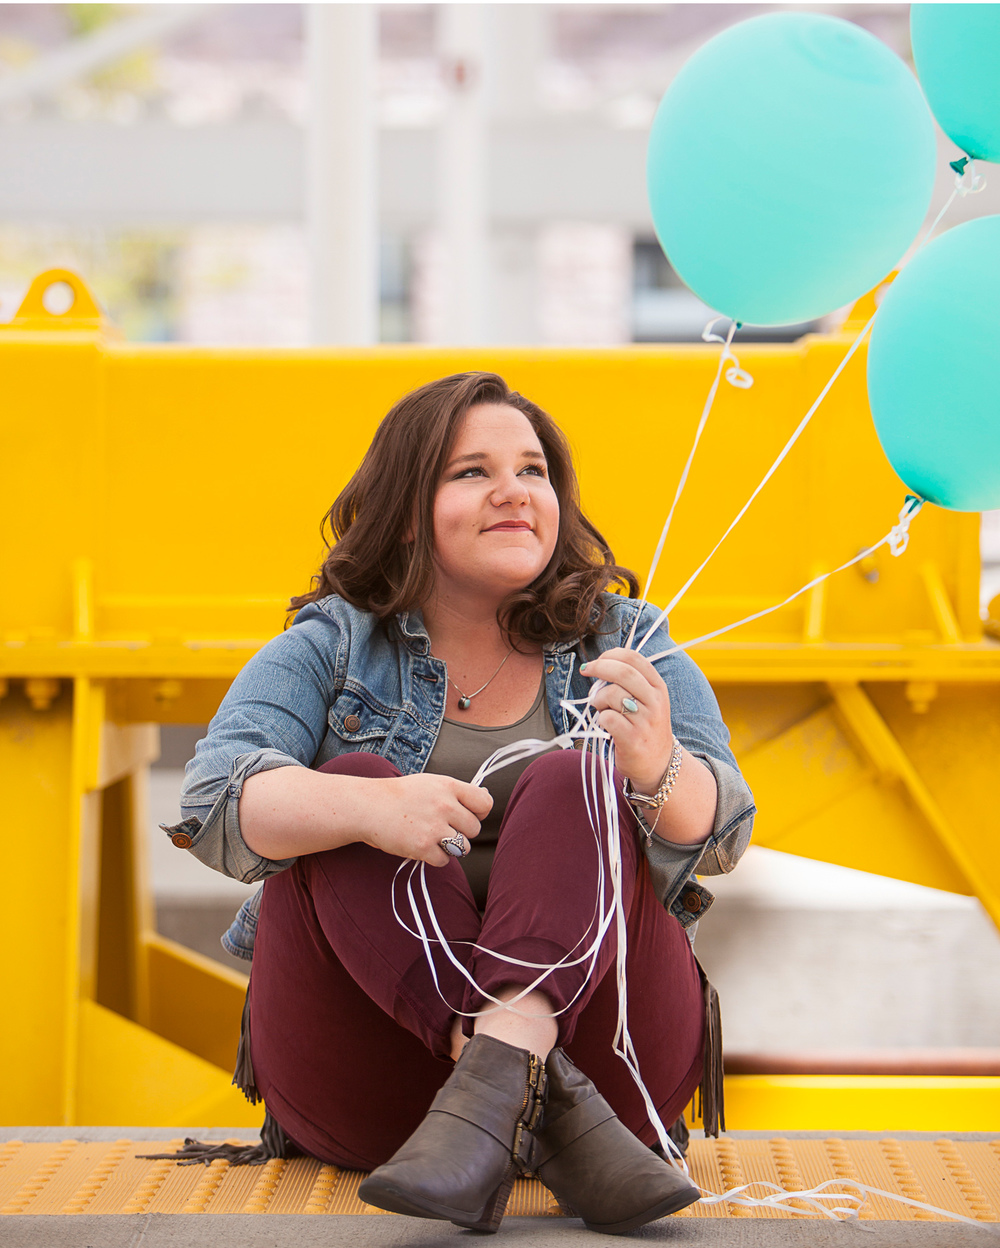 Senior Pictures with teal balloons in Denver | Merritt Portrait Studio